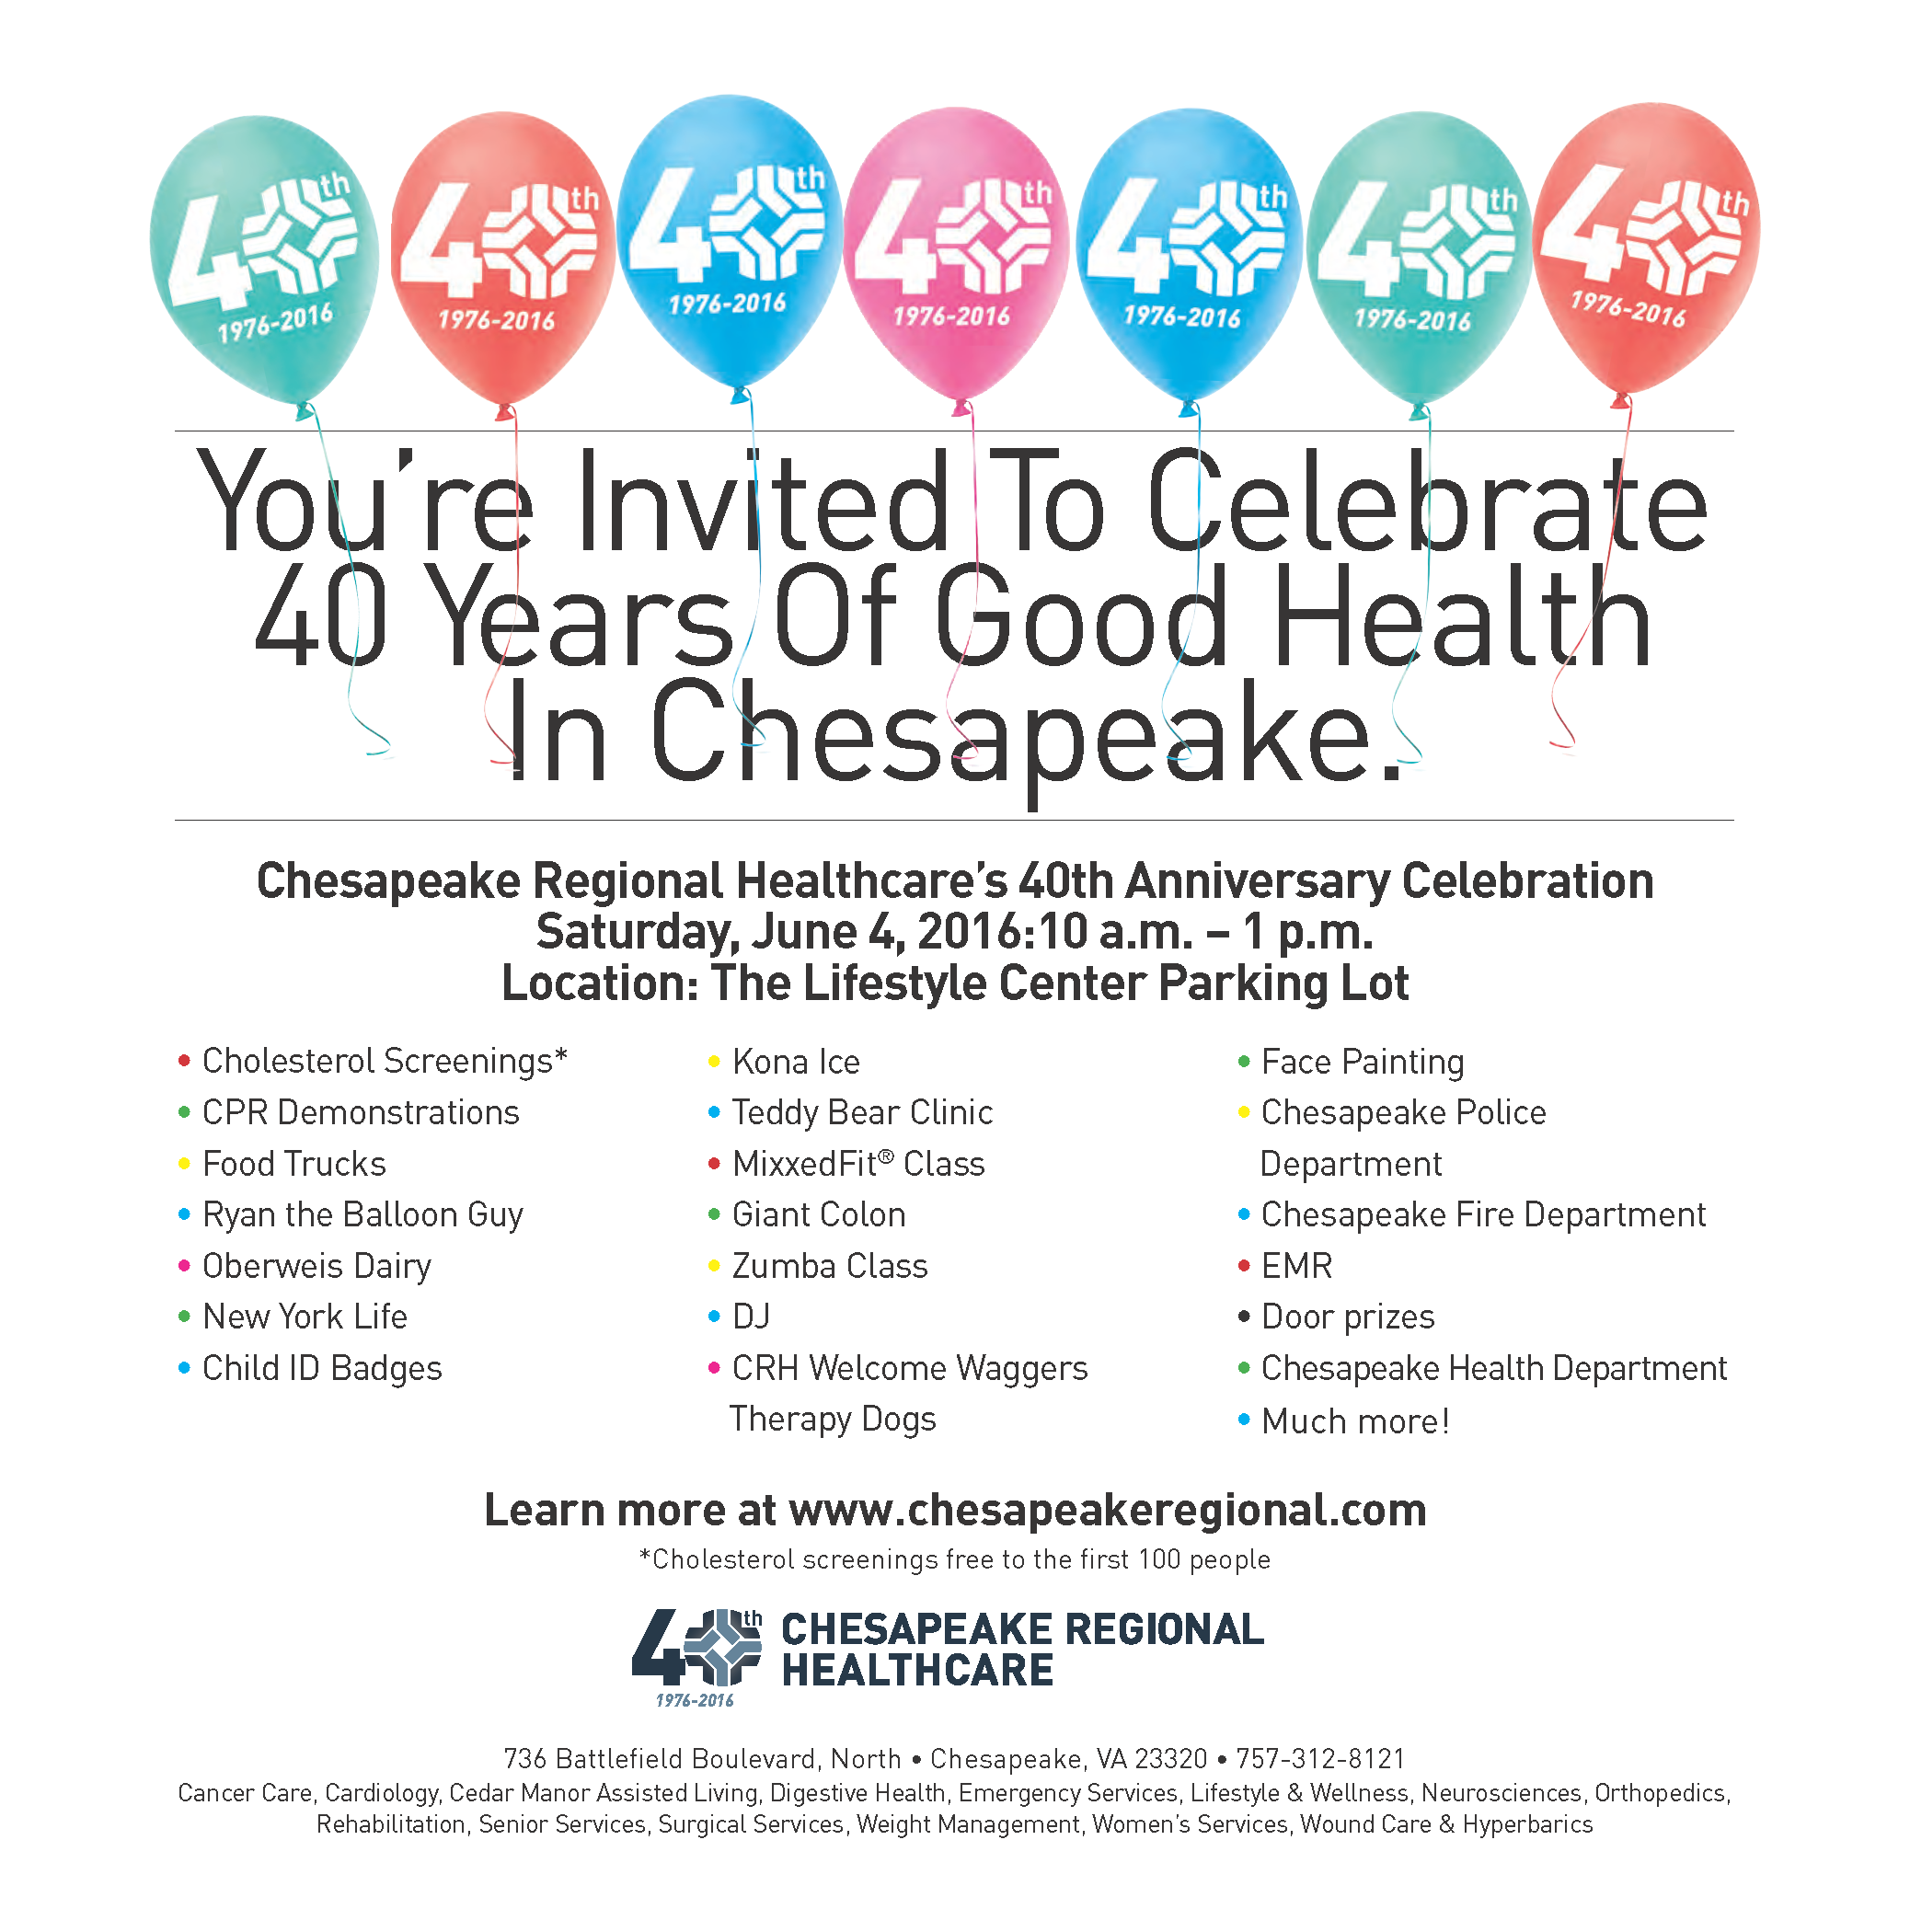 Chesapeake Regional Healthcare's 40th Anniversary Community Celebration